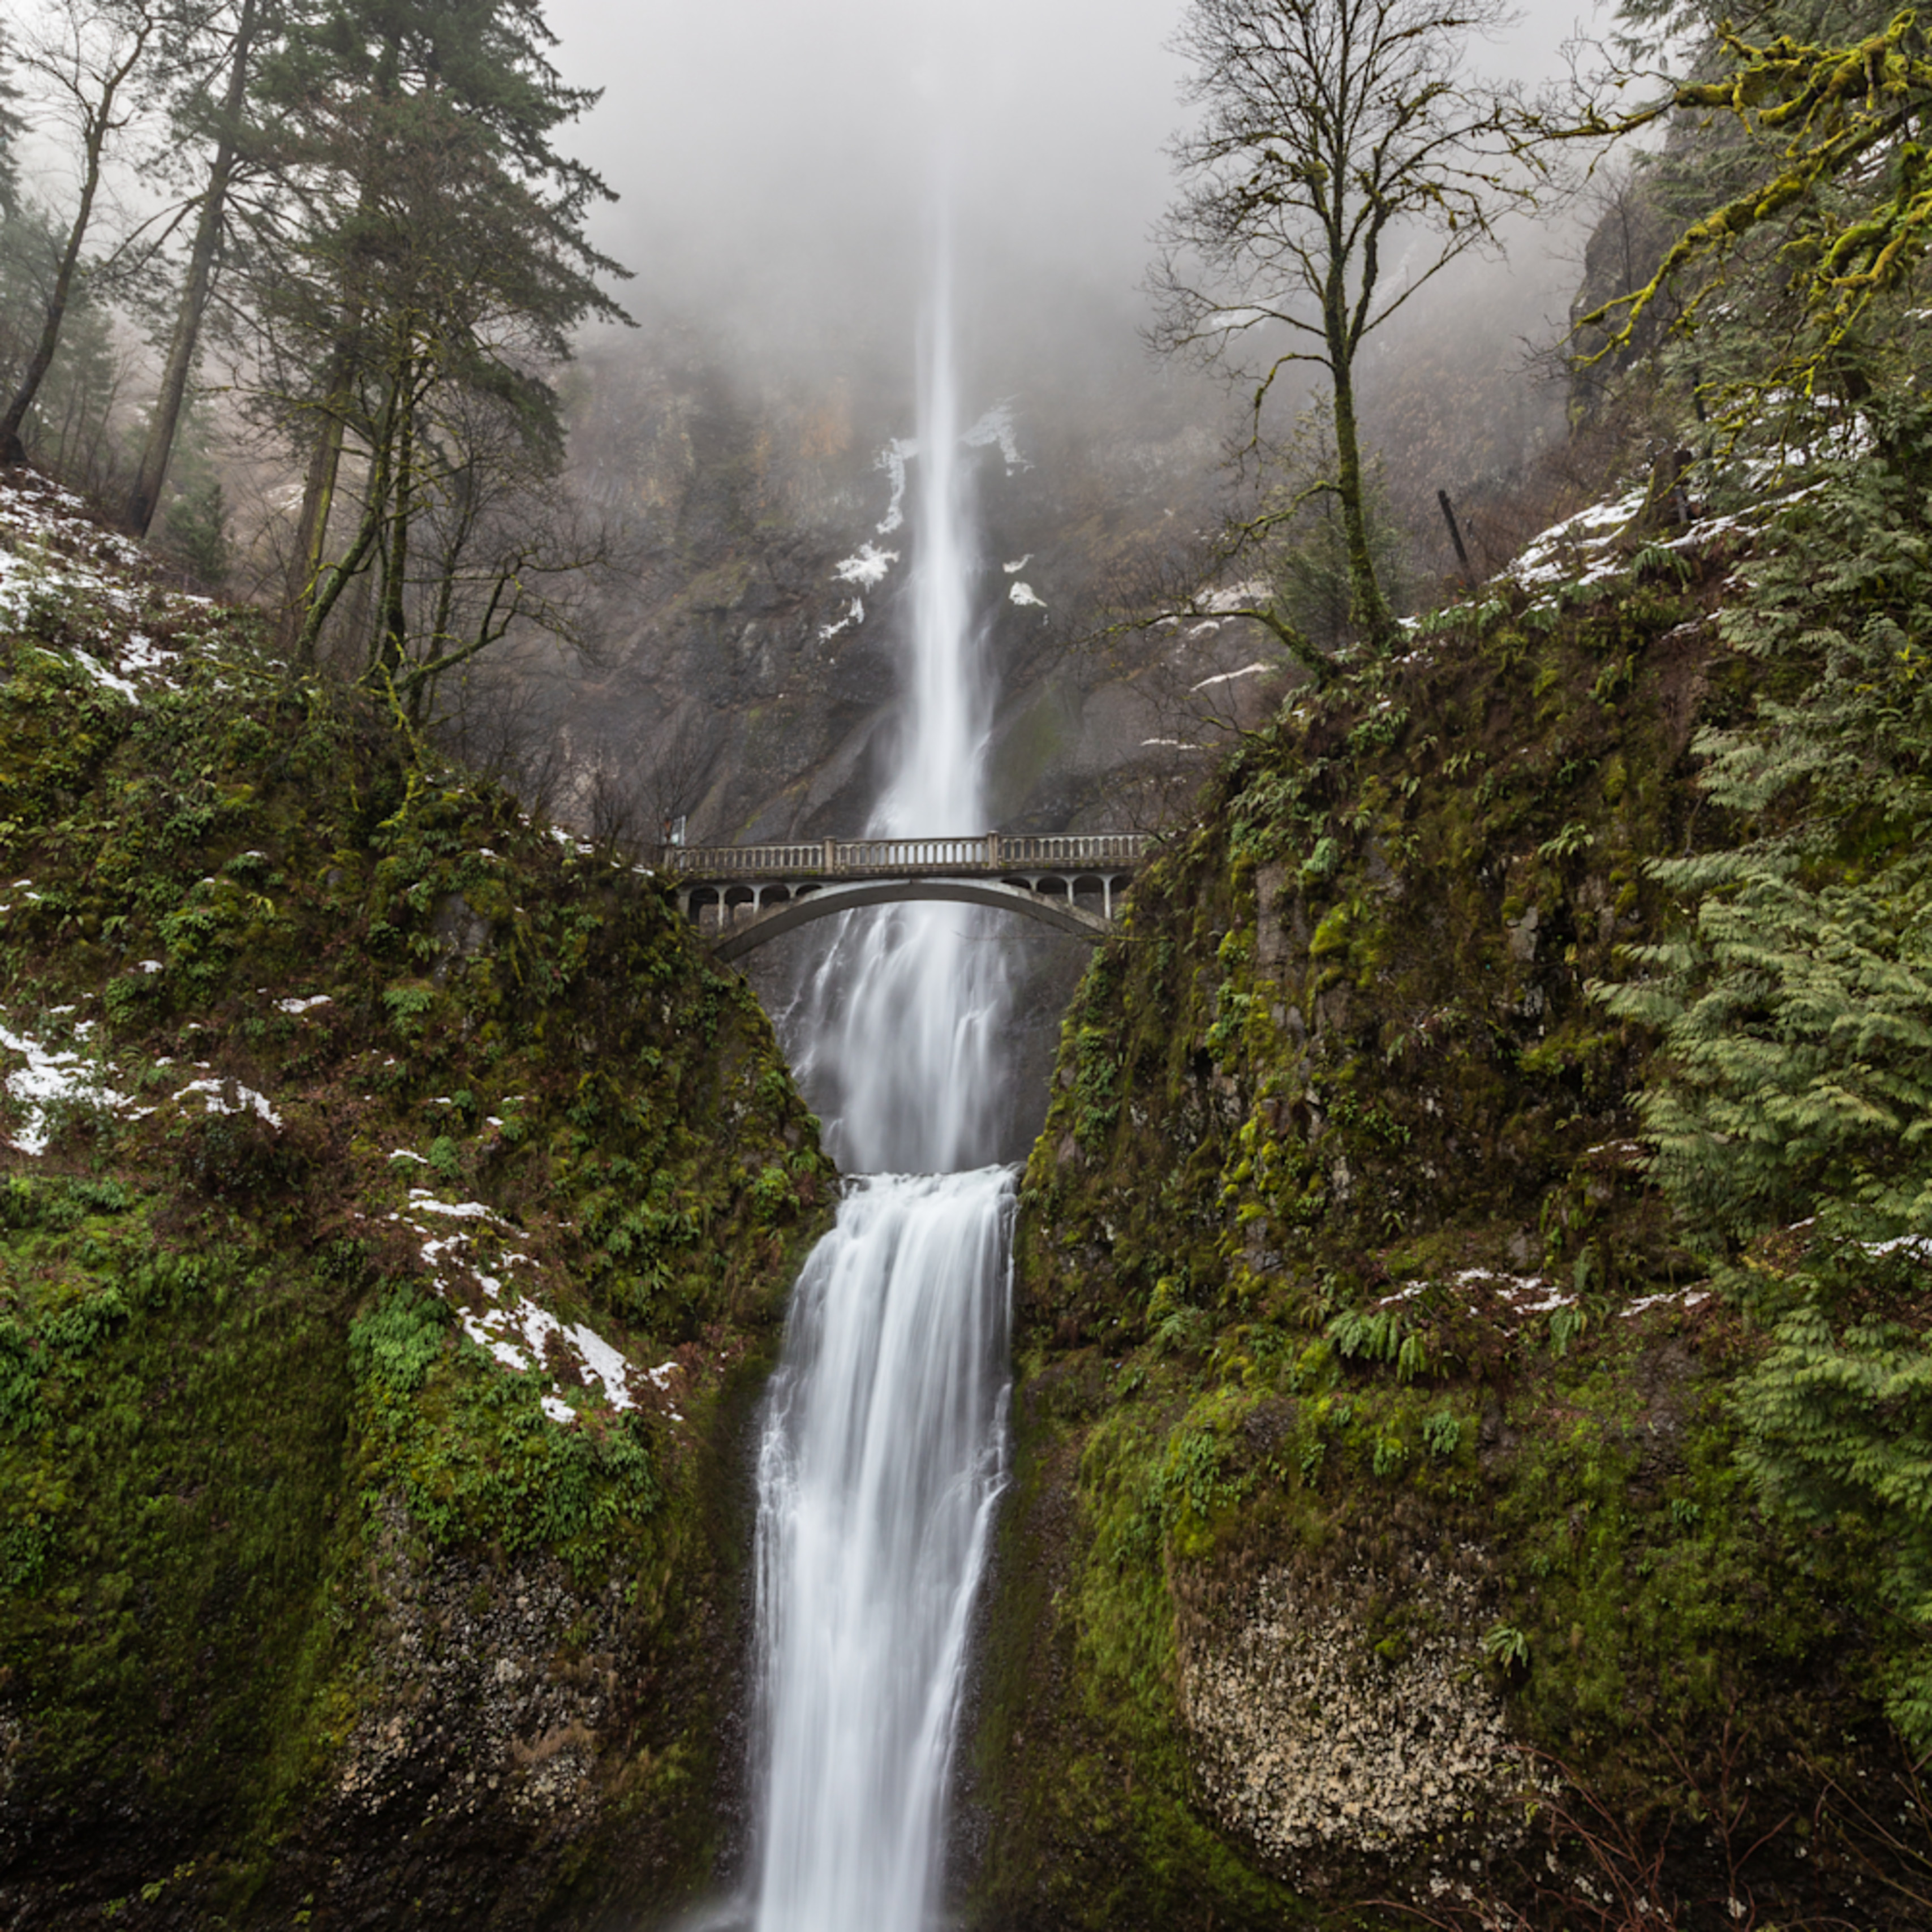 Multnomah falls winter snows 2 5 pmyh5j